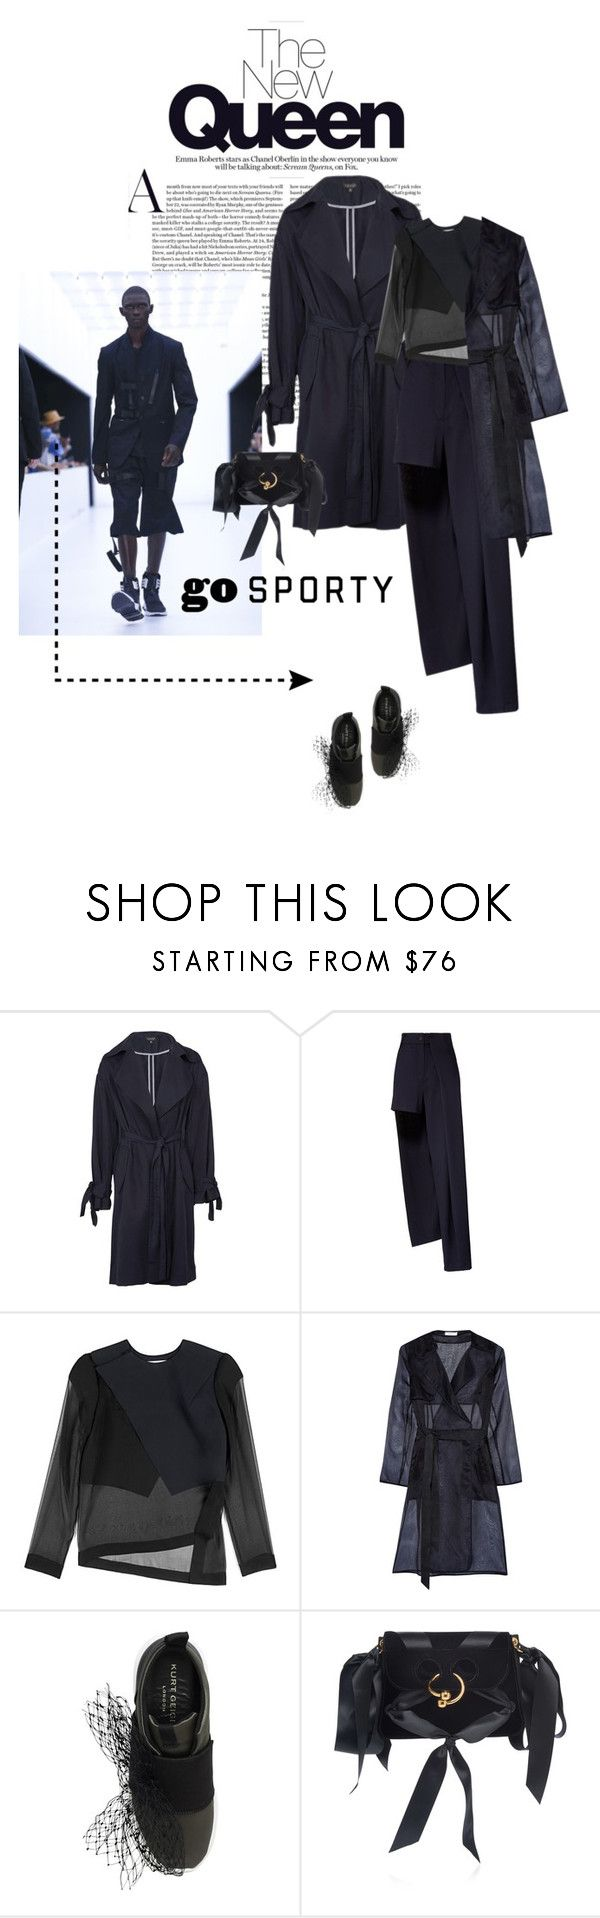 """""""Pierce Bag : New Contest"""" by vilen ❤ liked on Polyvore featuring Topshop, Anthony Vaccarello, Dion Lee, Milly, Kurt Geiger, sporty, menswear, sneakers and polyvoreeditorial"""